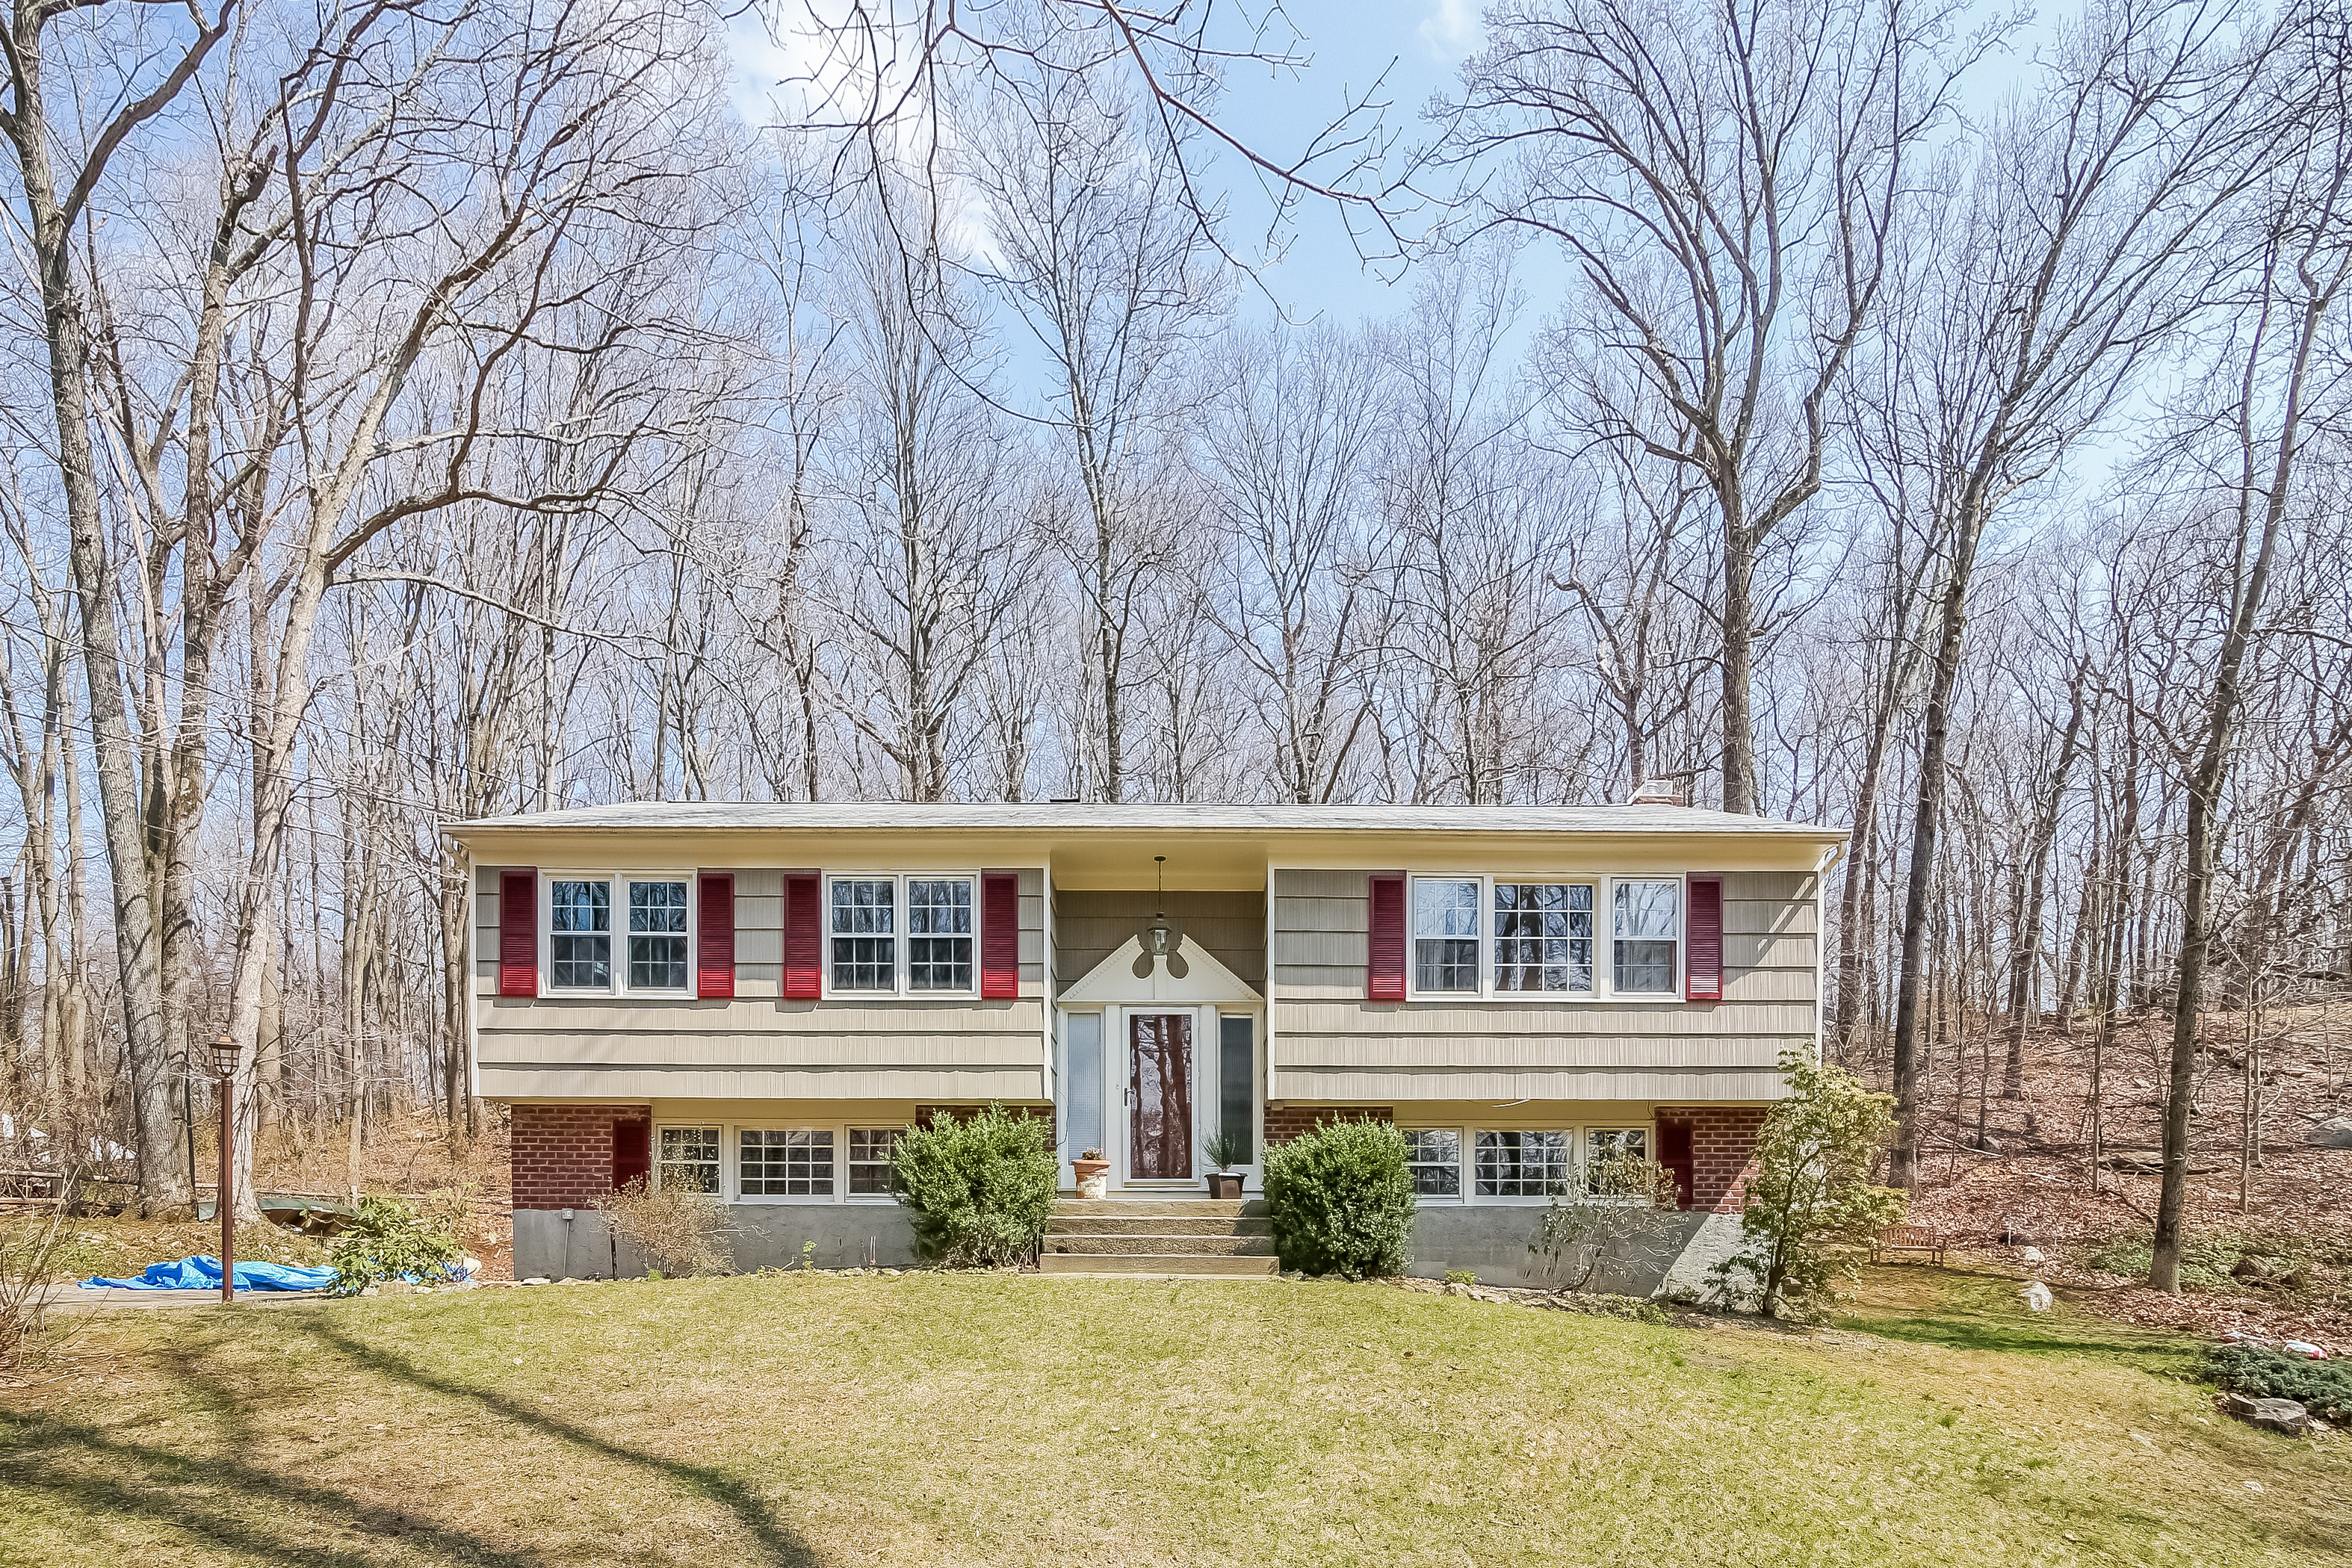 Single Family Home for Sale at Spacious Raised Ranch 92 Lakeside Drive Katonah, New York, 10536 United States